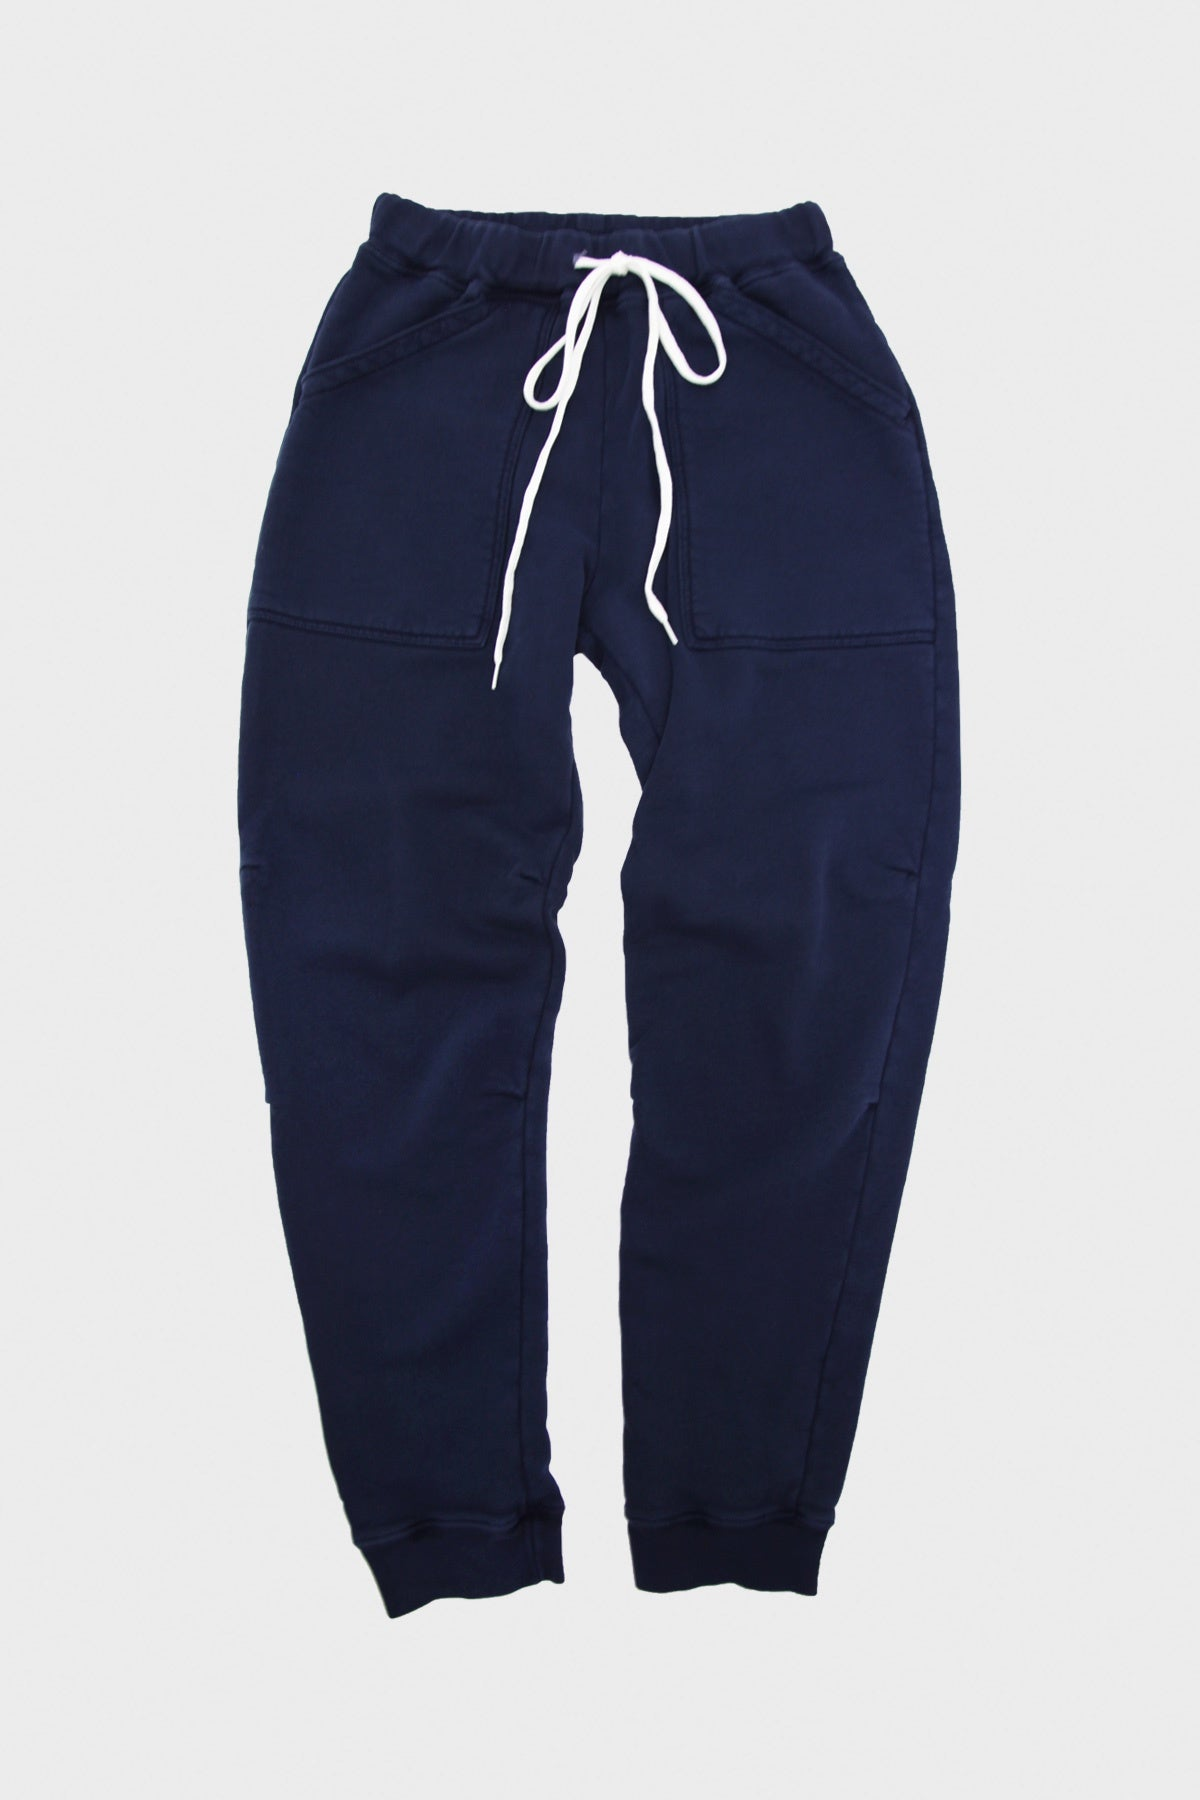 Velva Sheen - Pigment Army Gym Sweatpants - Navy - Canoe Club